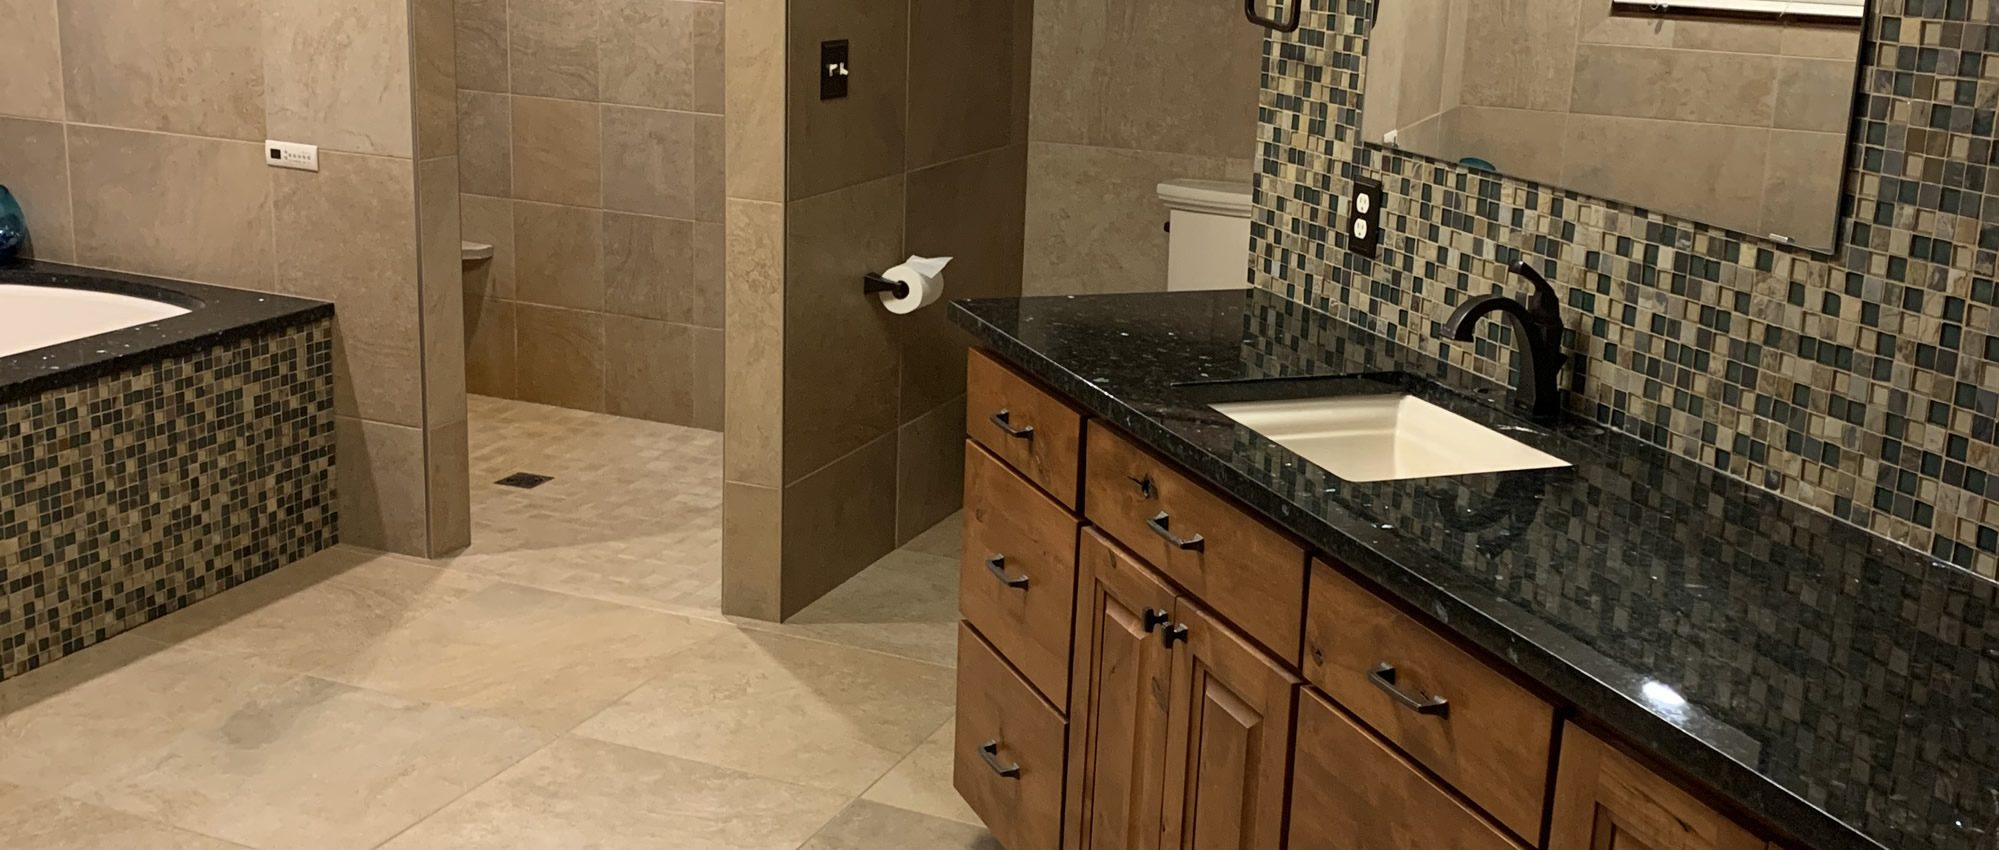 servais tile stone family owned